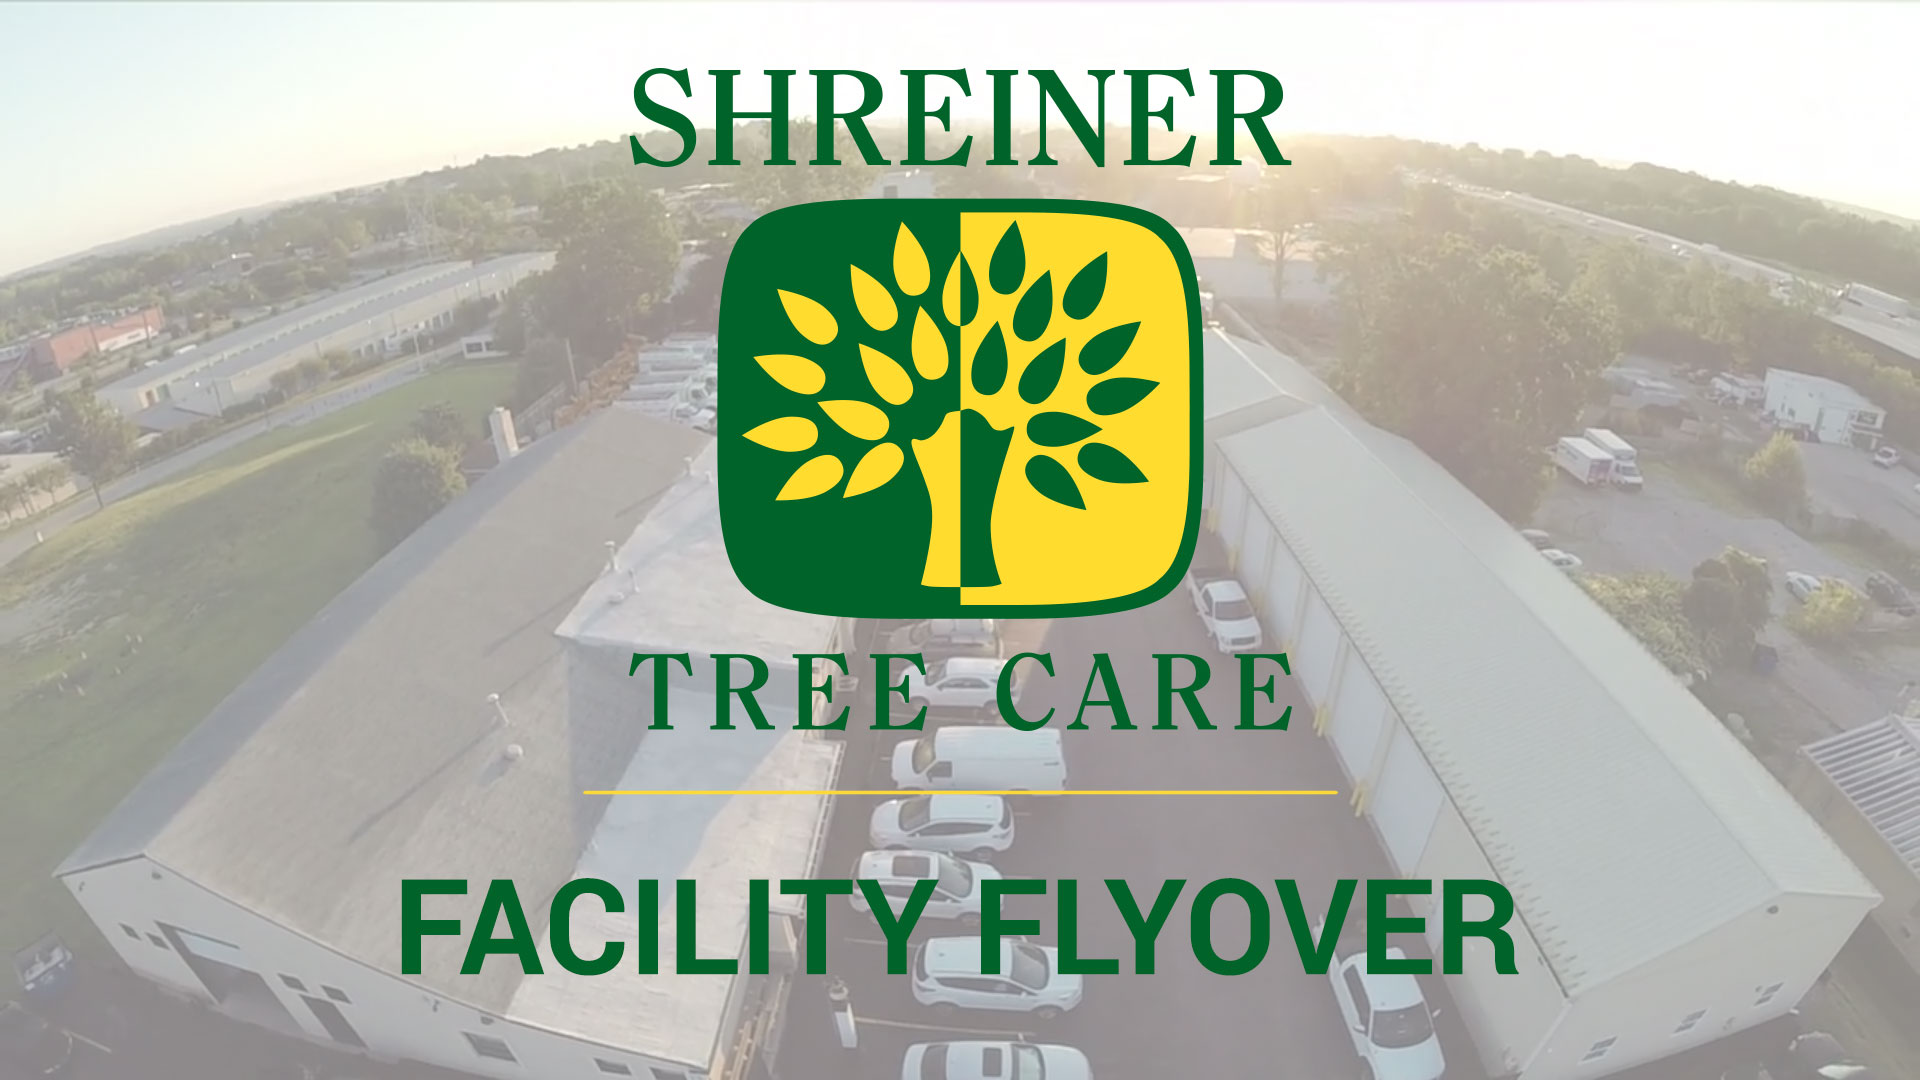 Shreiner Tree Care - Facility Flyover Video